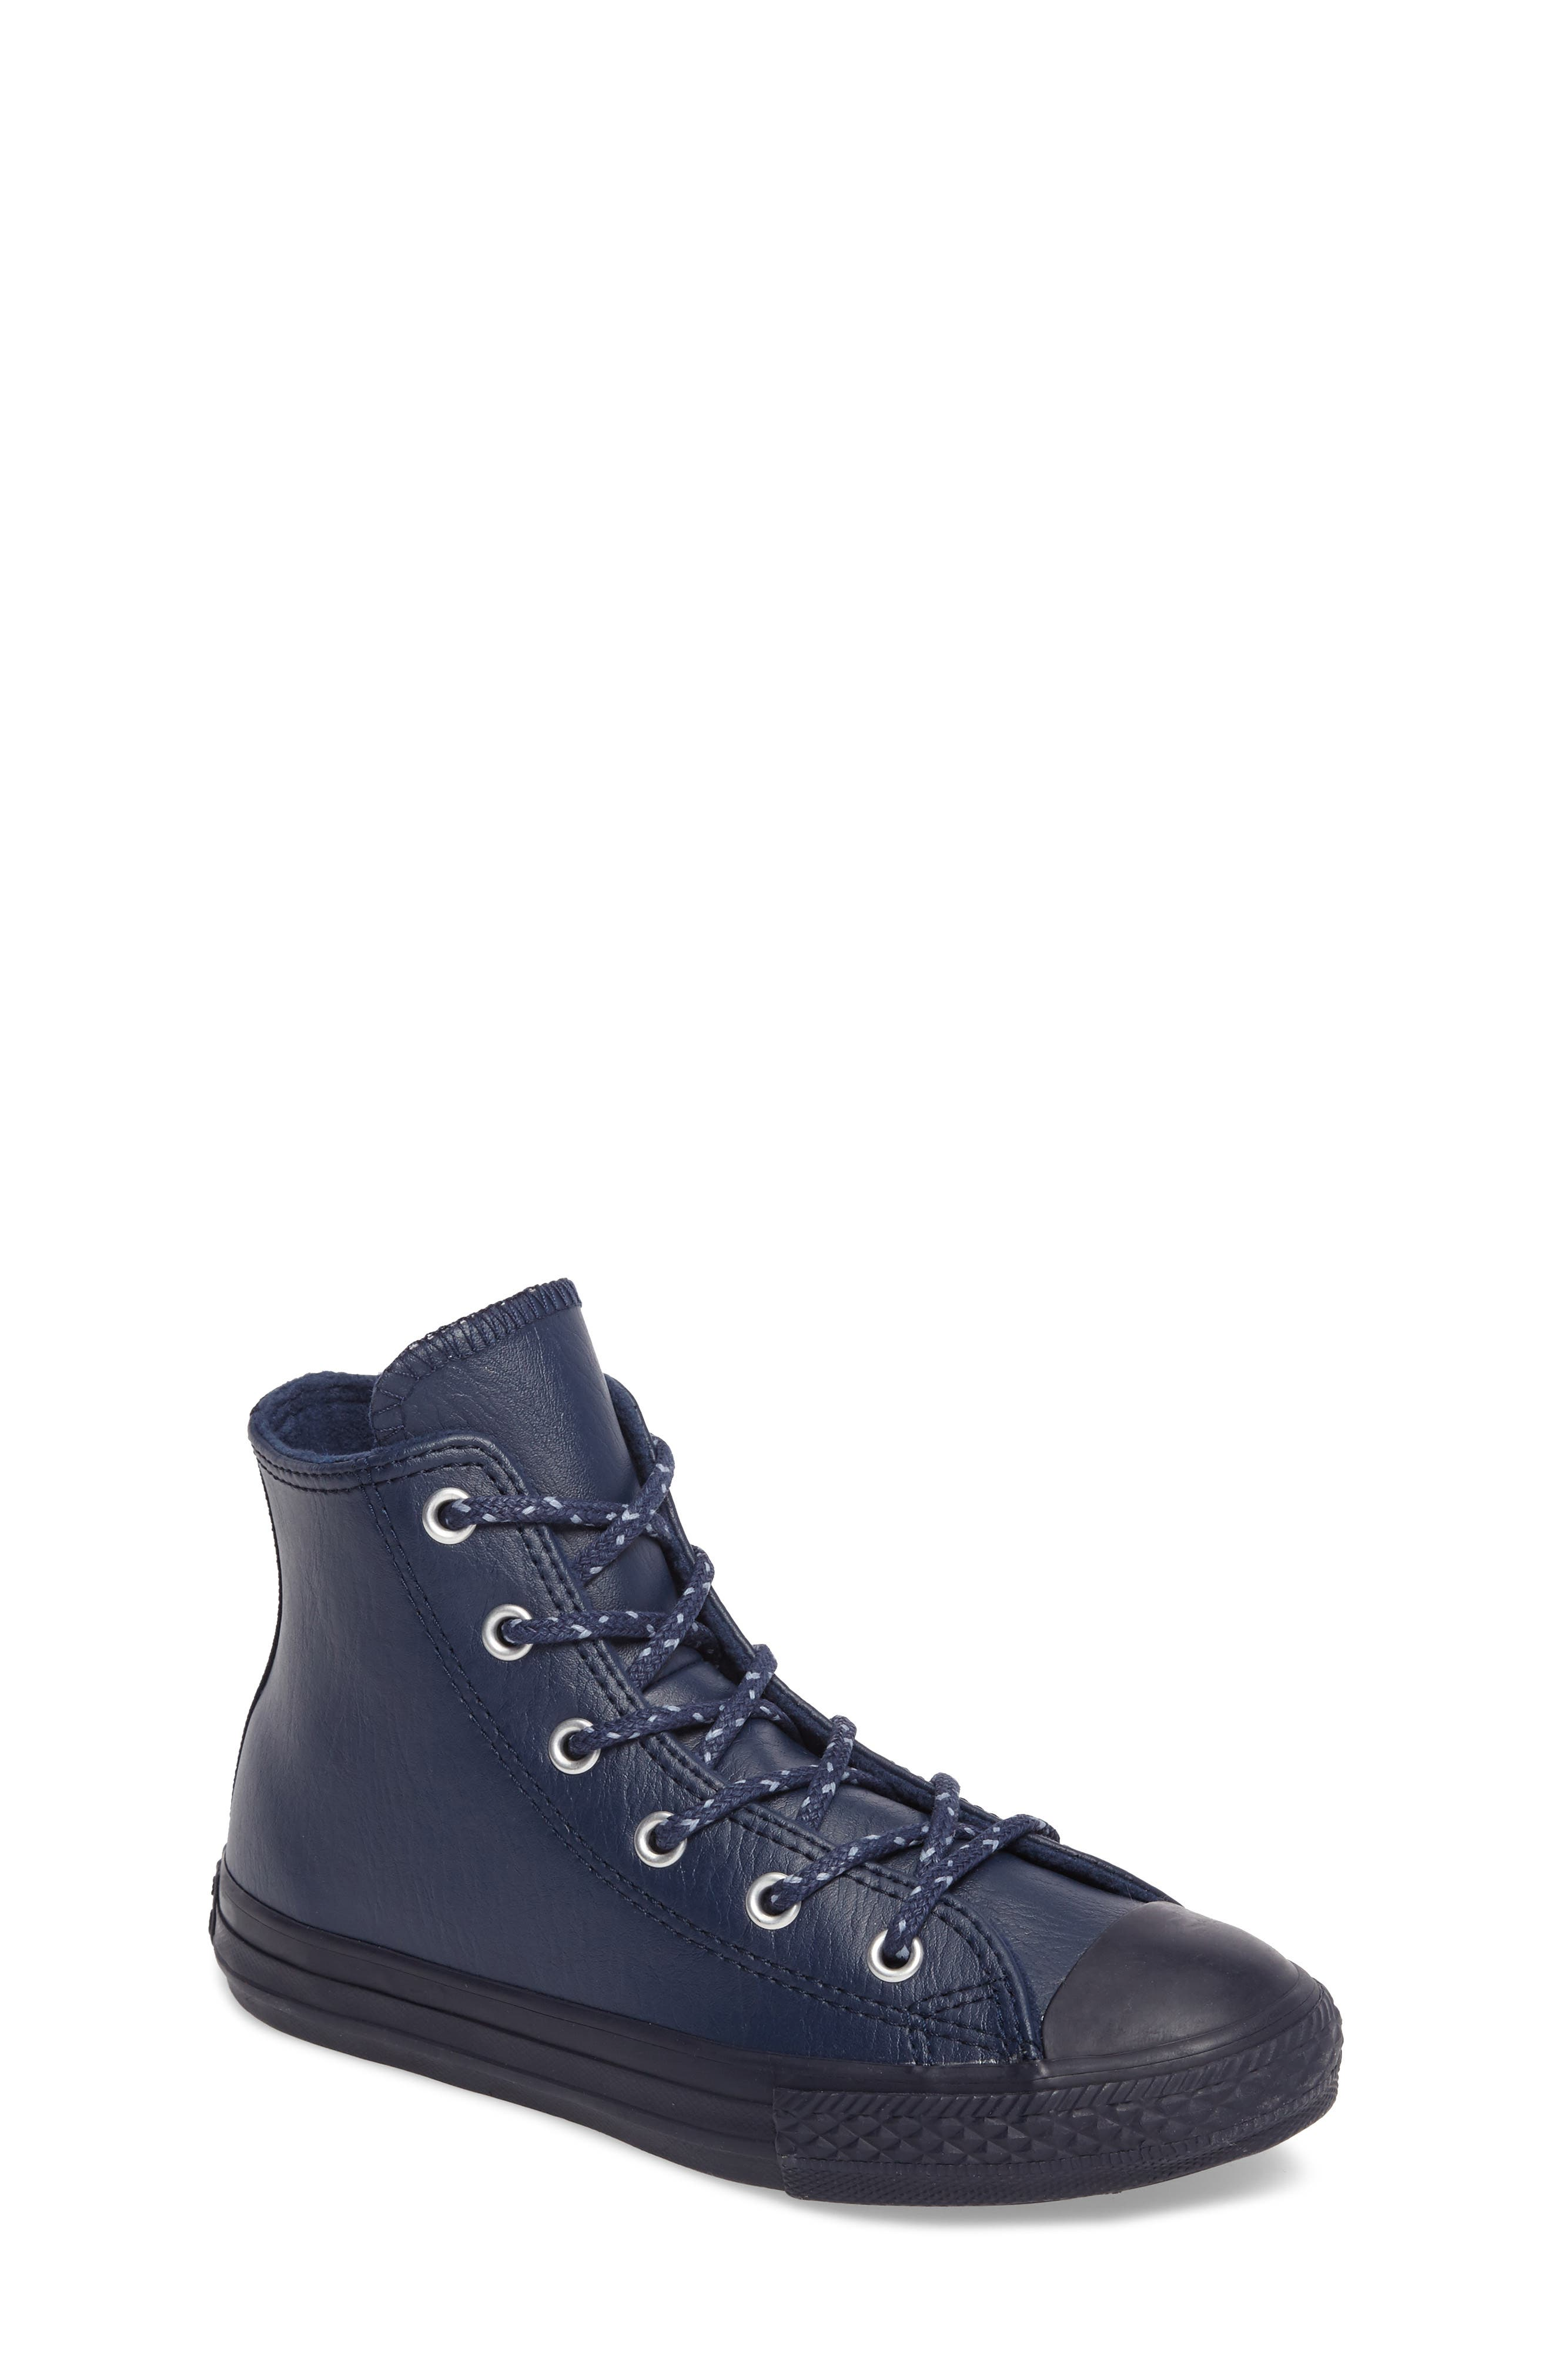 Main Image - Converse Chuck Taylor® All Star® Leather High Top Sneaker (Toddler & Little Kid)